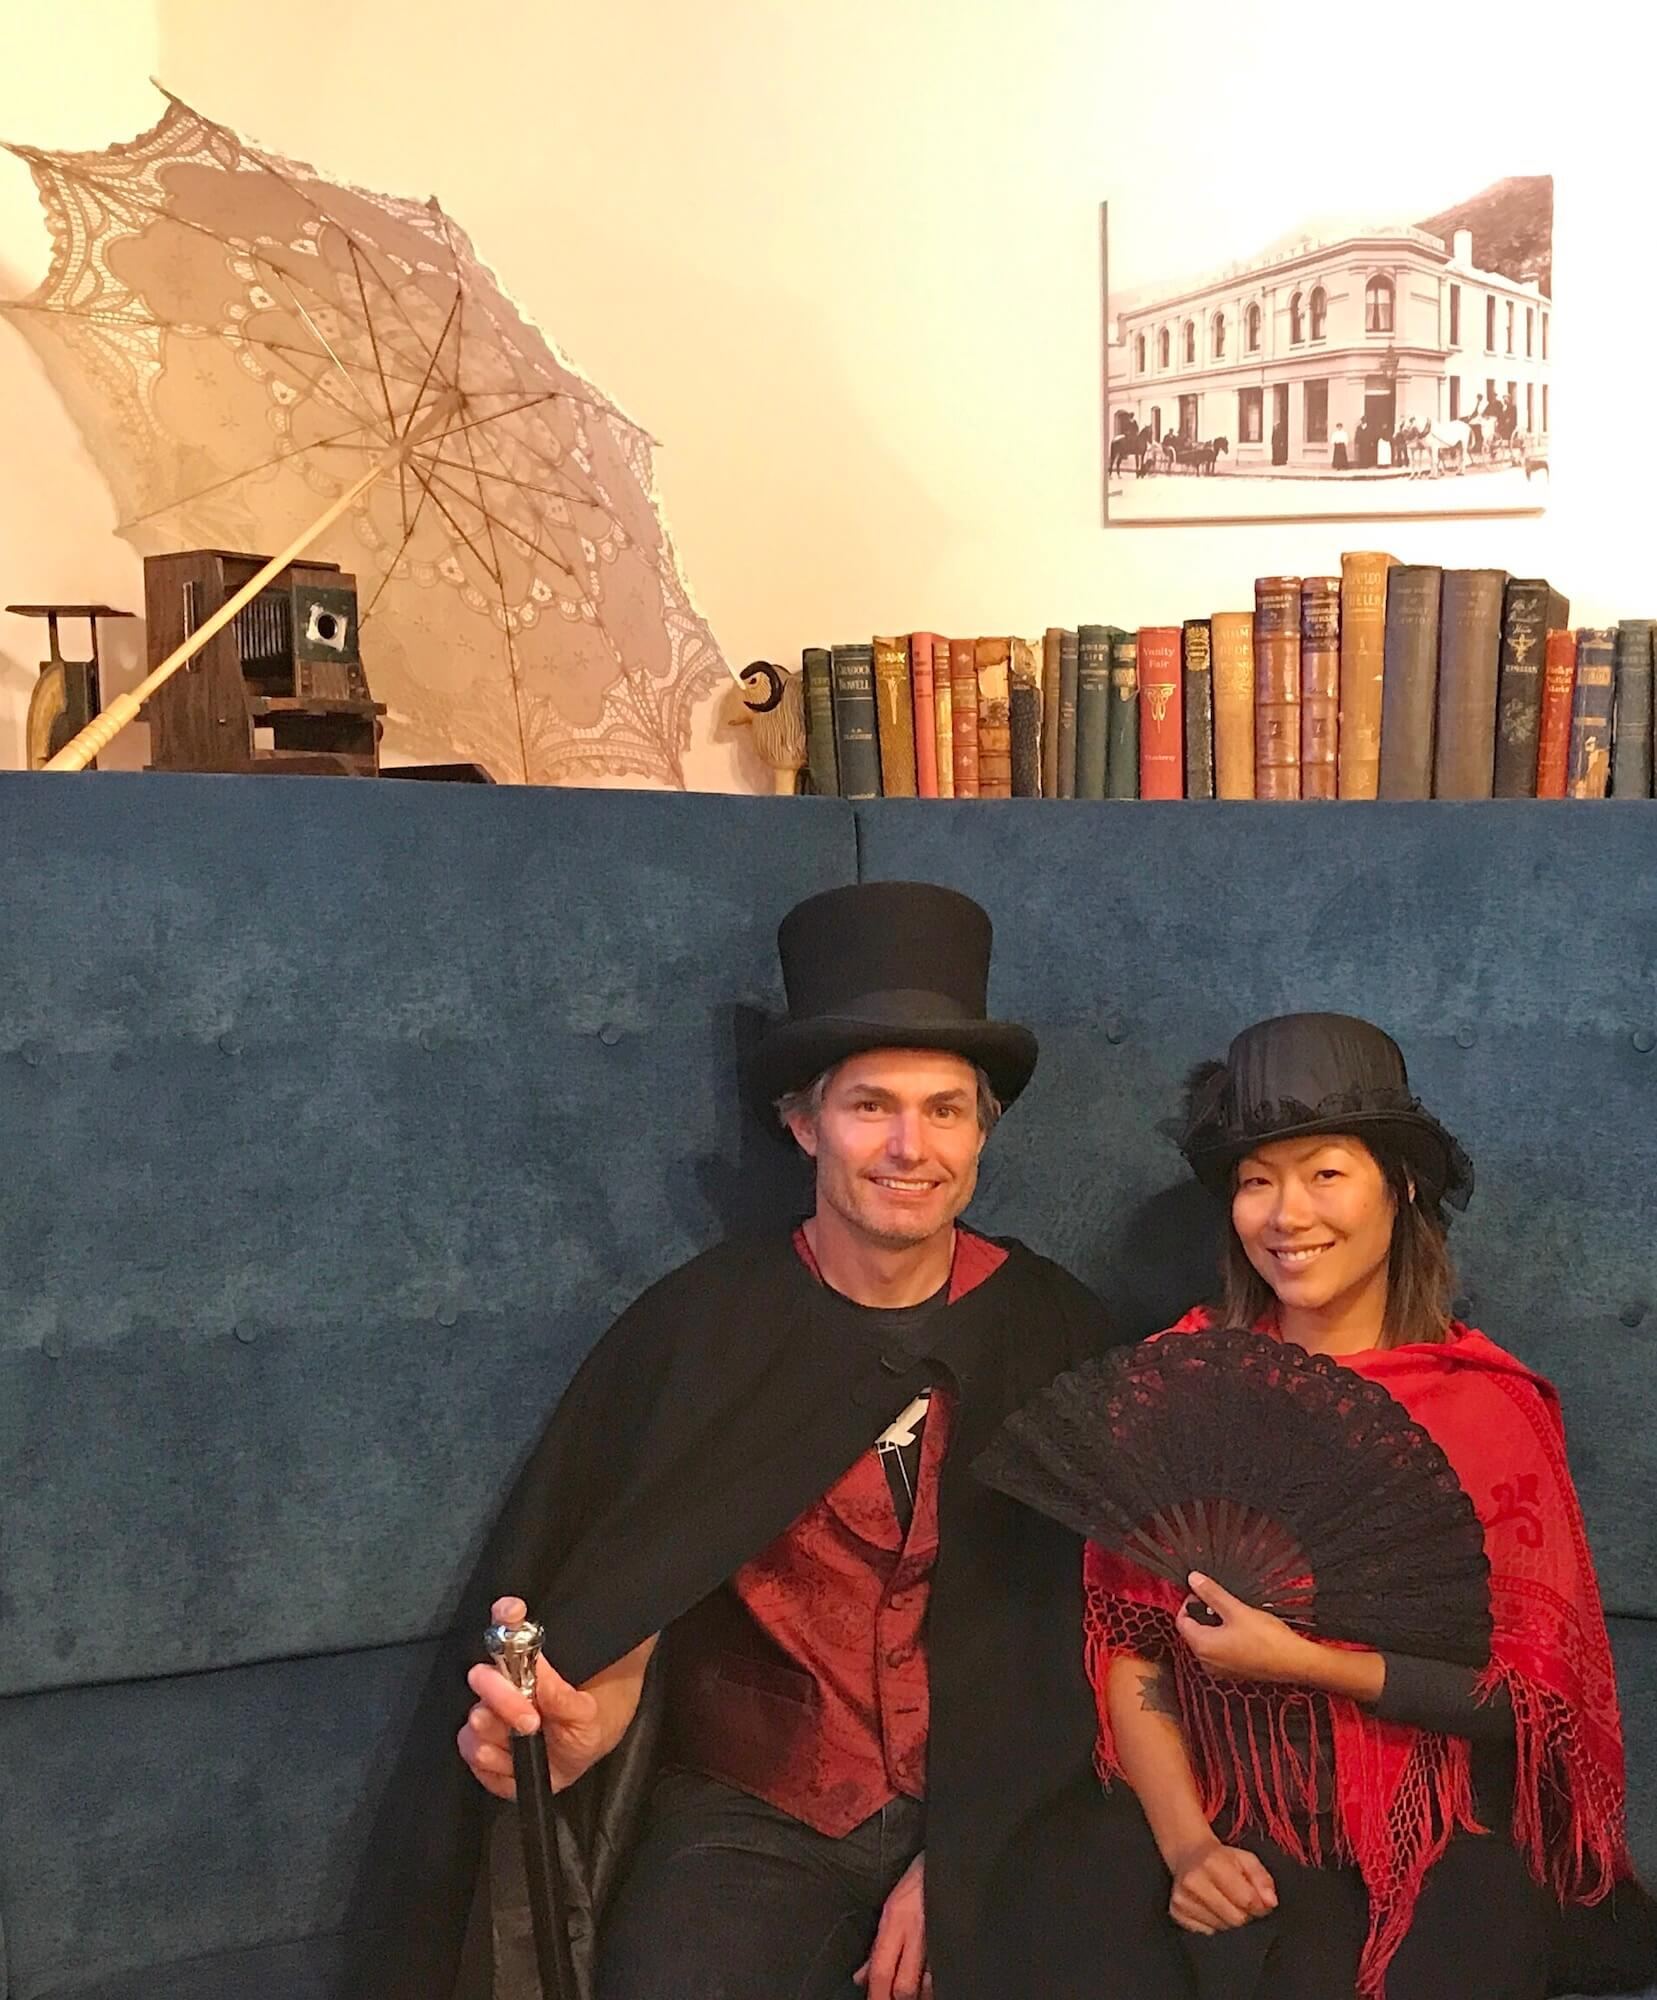 DOING OUR BEST TO LOOK LIKE CITIZENS OF THE QUEENSTOWN GOLD RUSH ERA!